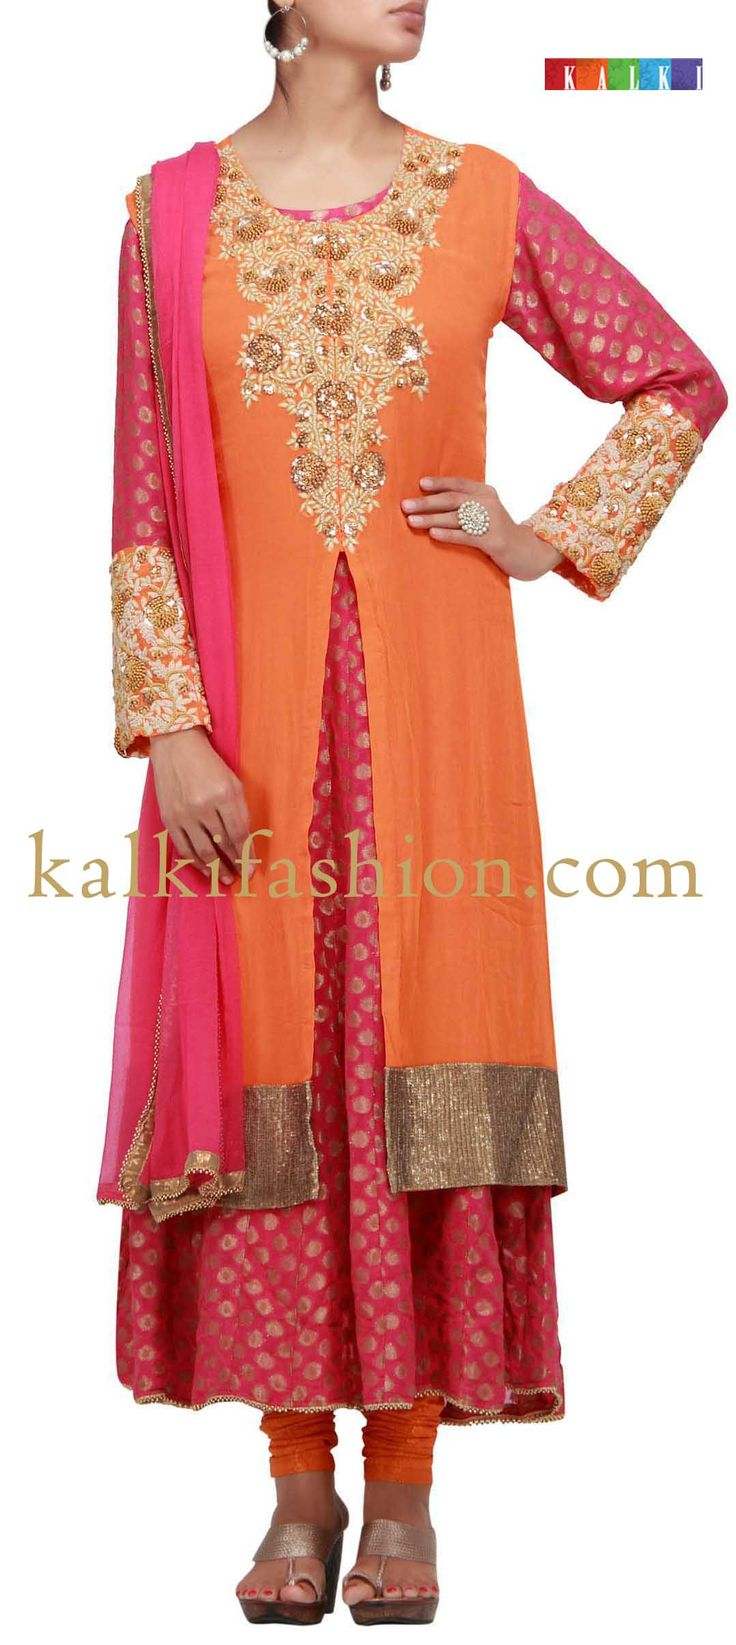 Buy it now  http://www.kalkifashion.com/two-piece-suit-in-orange-and-pink-with-sequence-and-french-knot-work.html  Two piece suit in orange and pink with sequence and french knot work